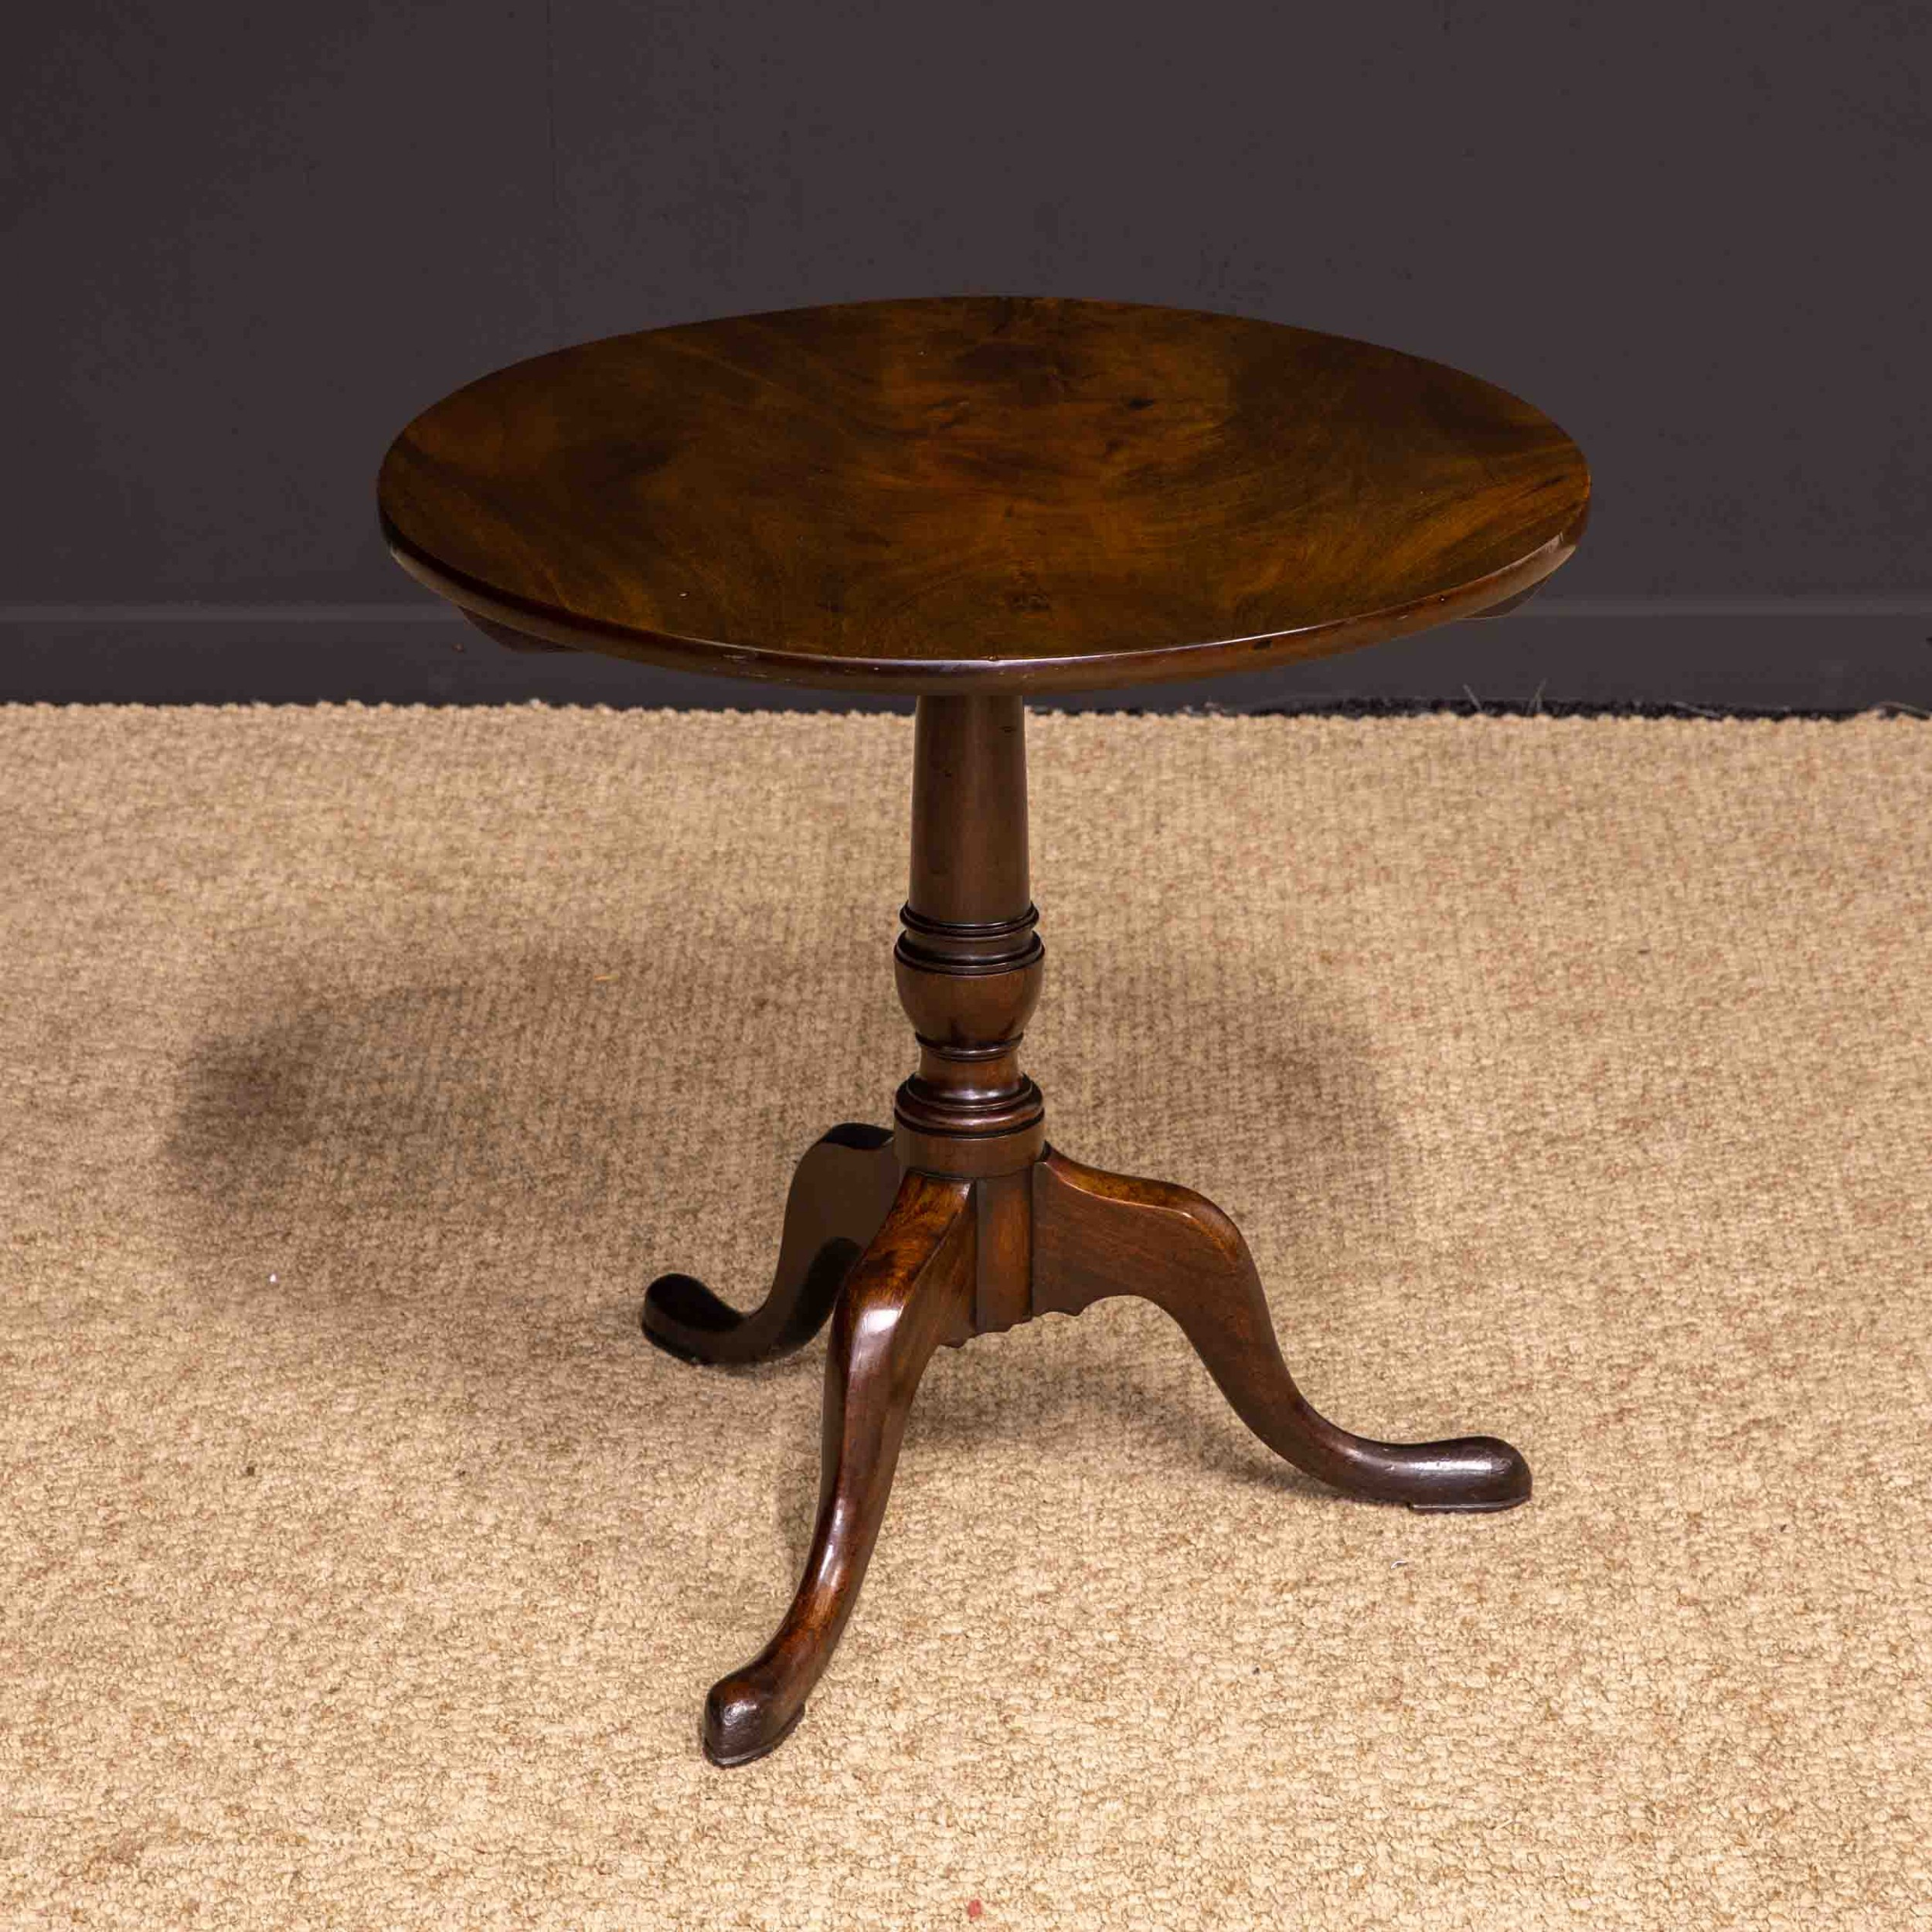 george iii mahogany canon barrel column tripod table